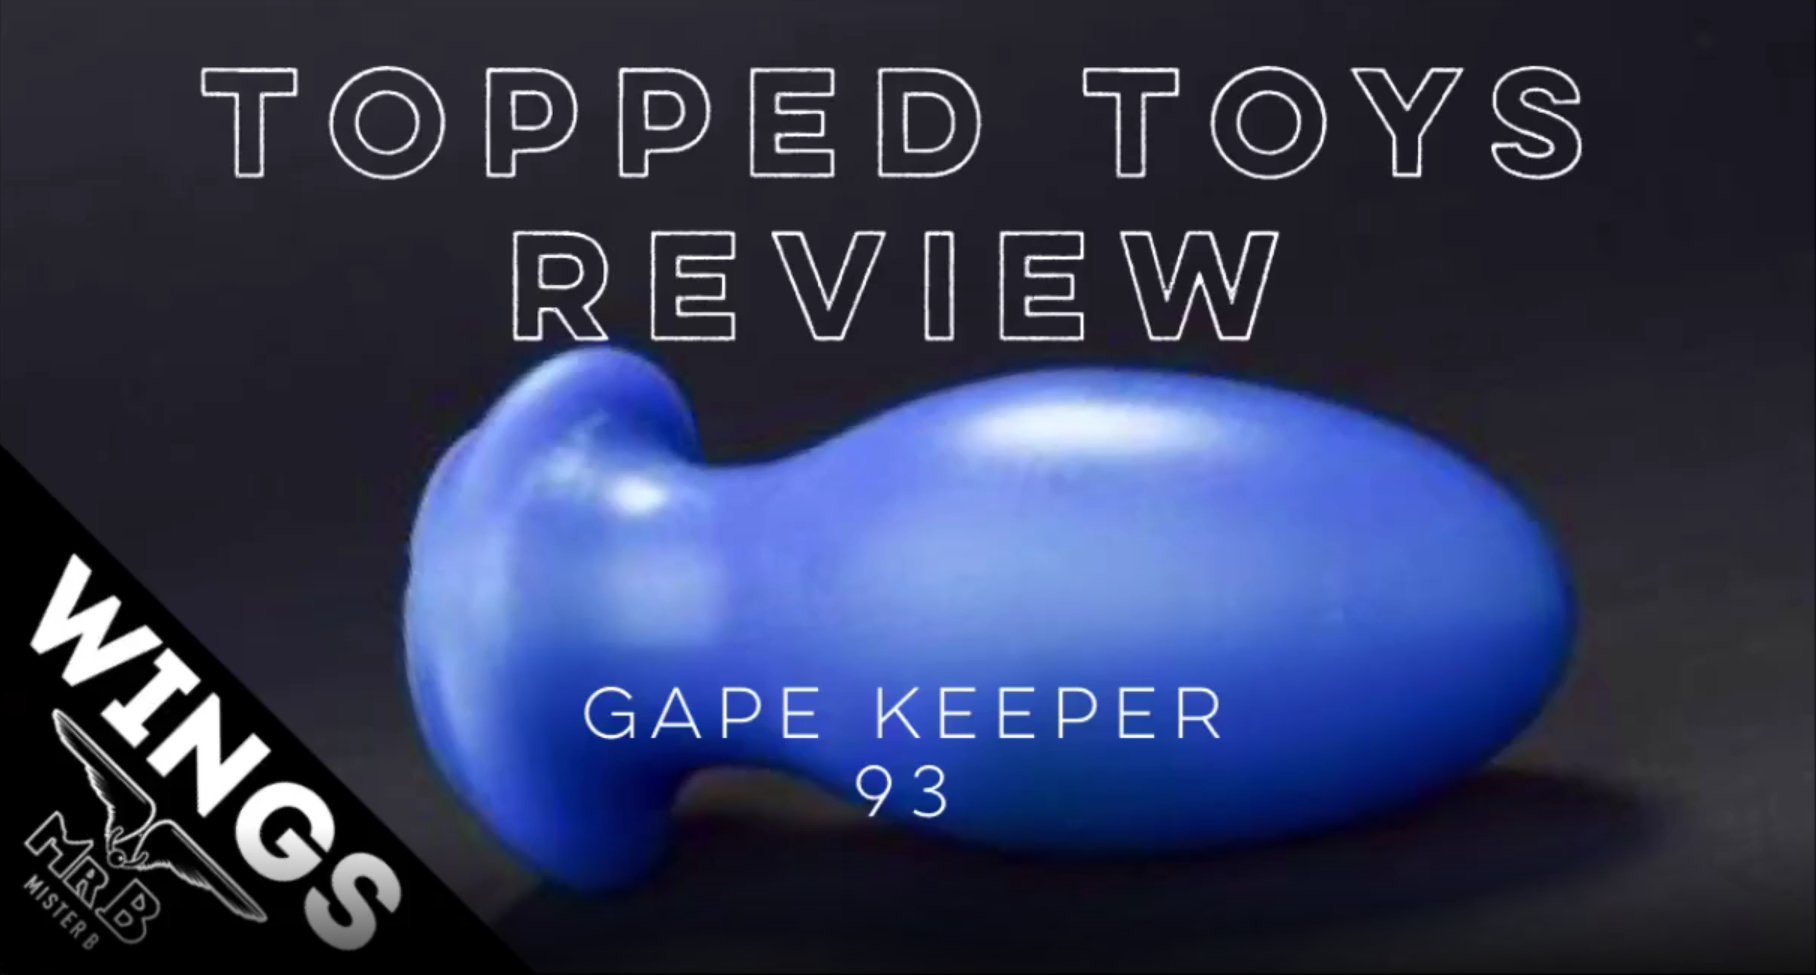 """Gape Keeper 93 Review by """"Bear and Boy"""" for Mister B"""